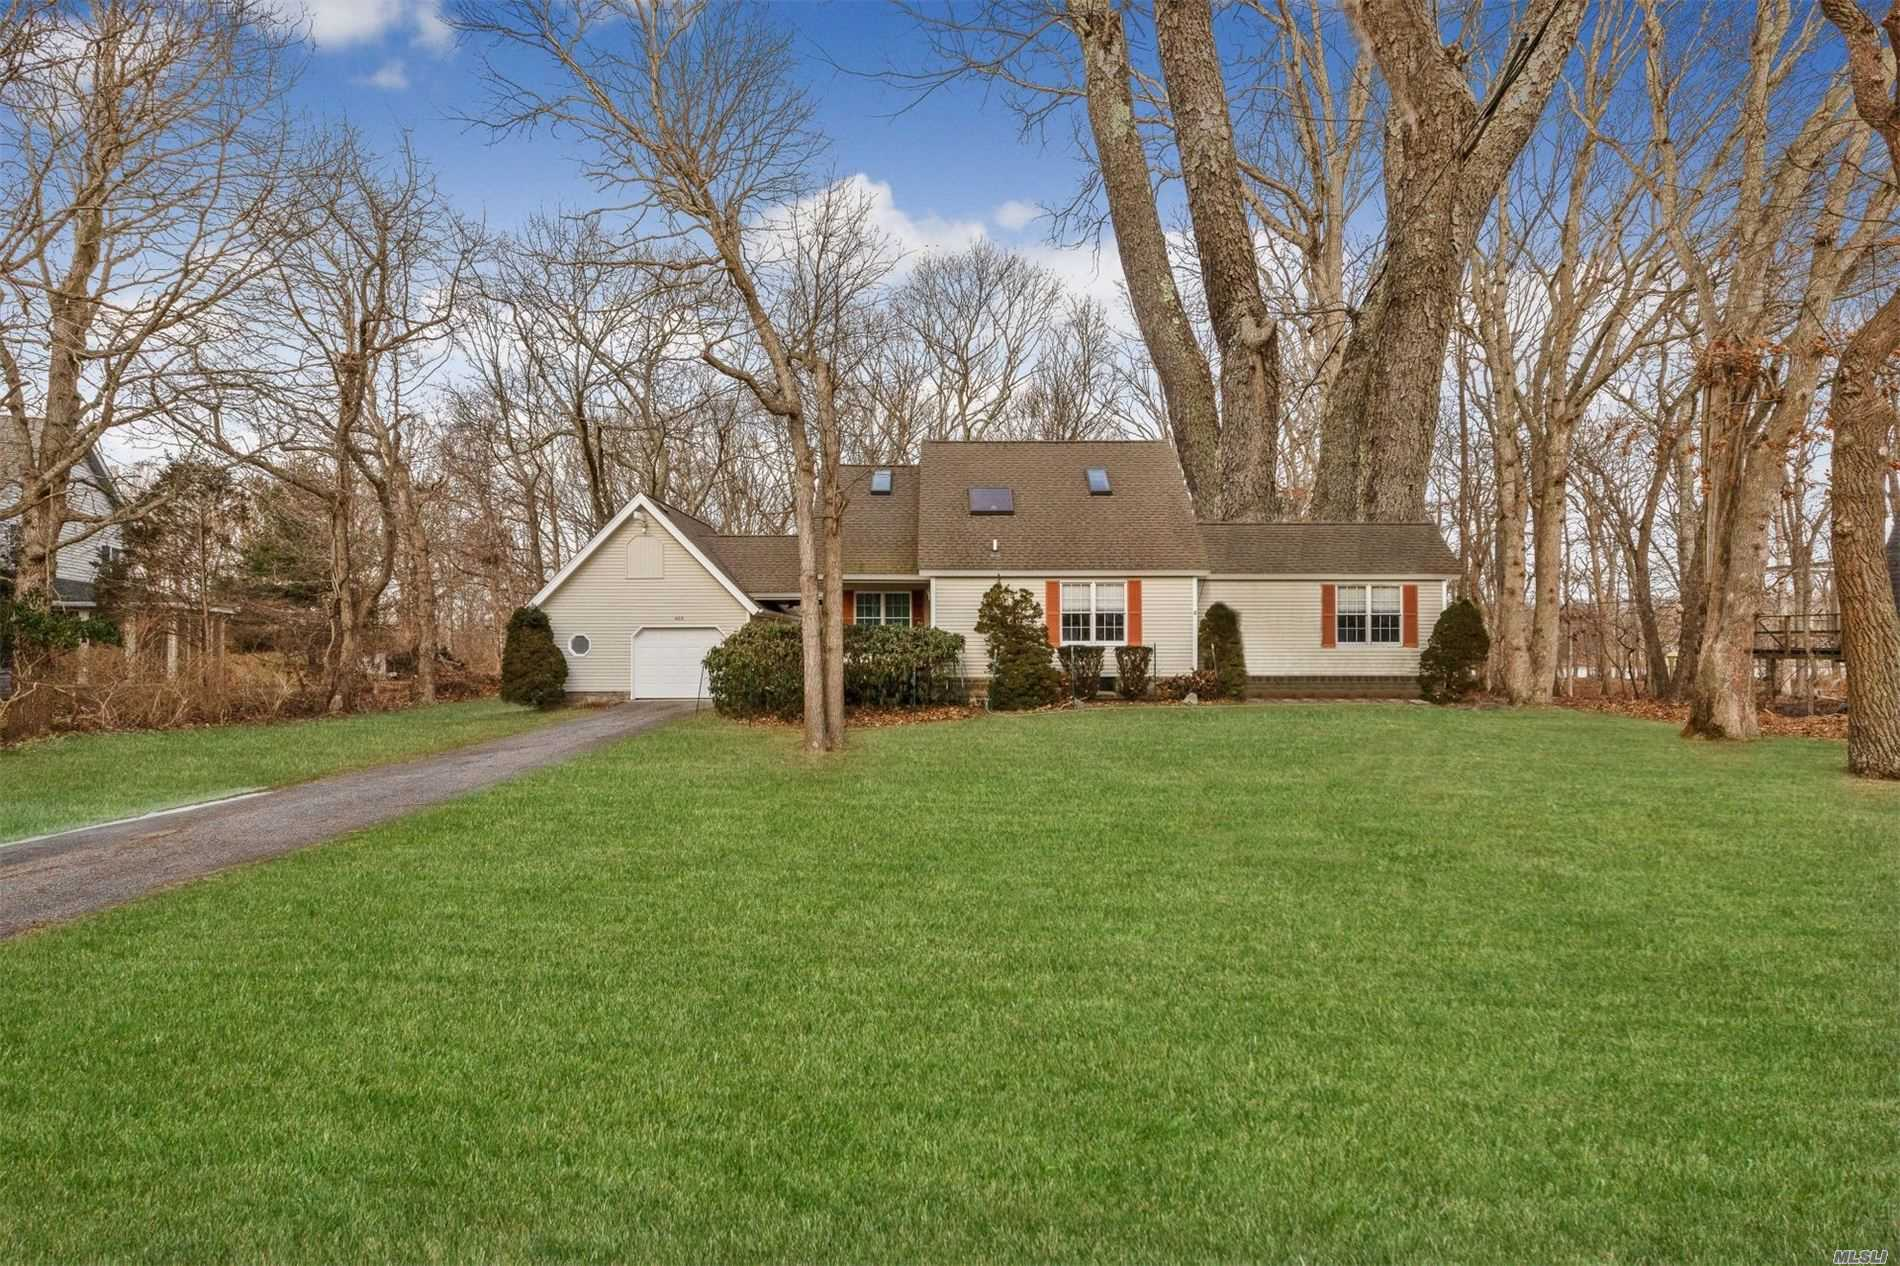 465 Tarpon Dr - Southold, New York